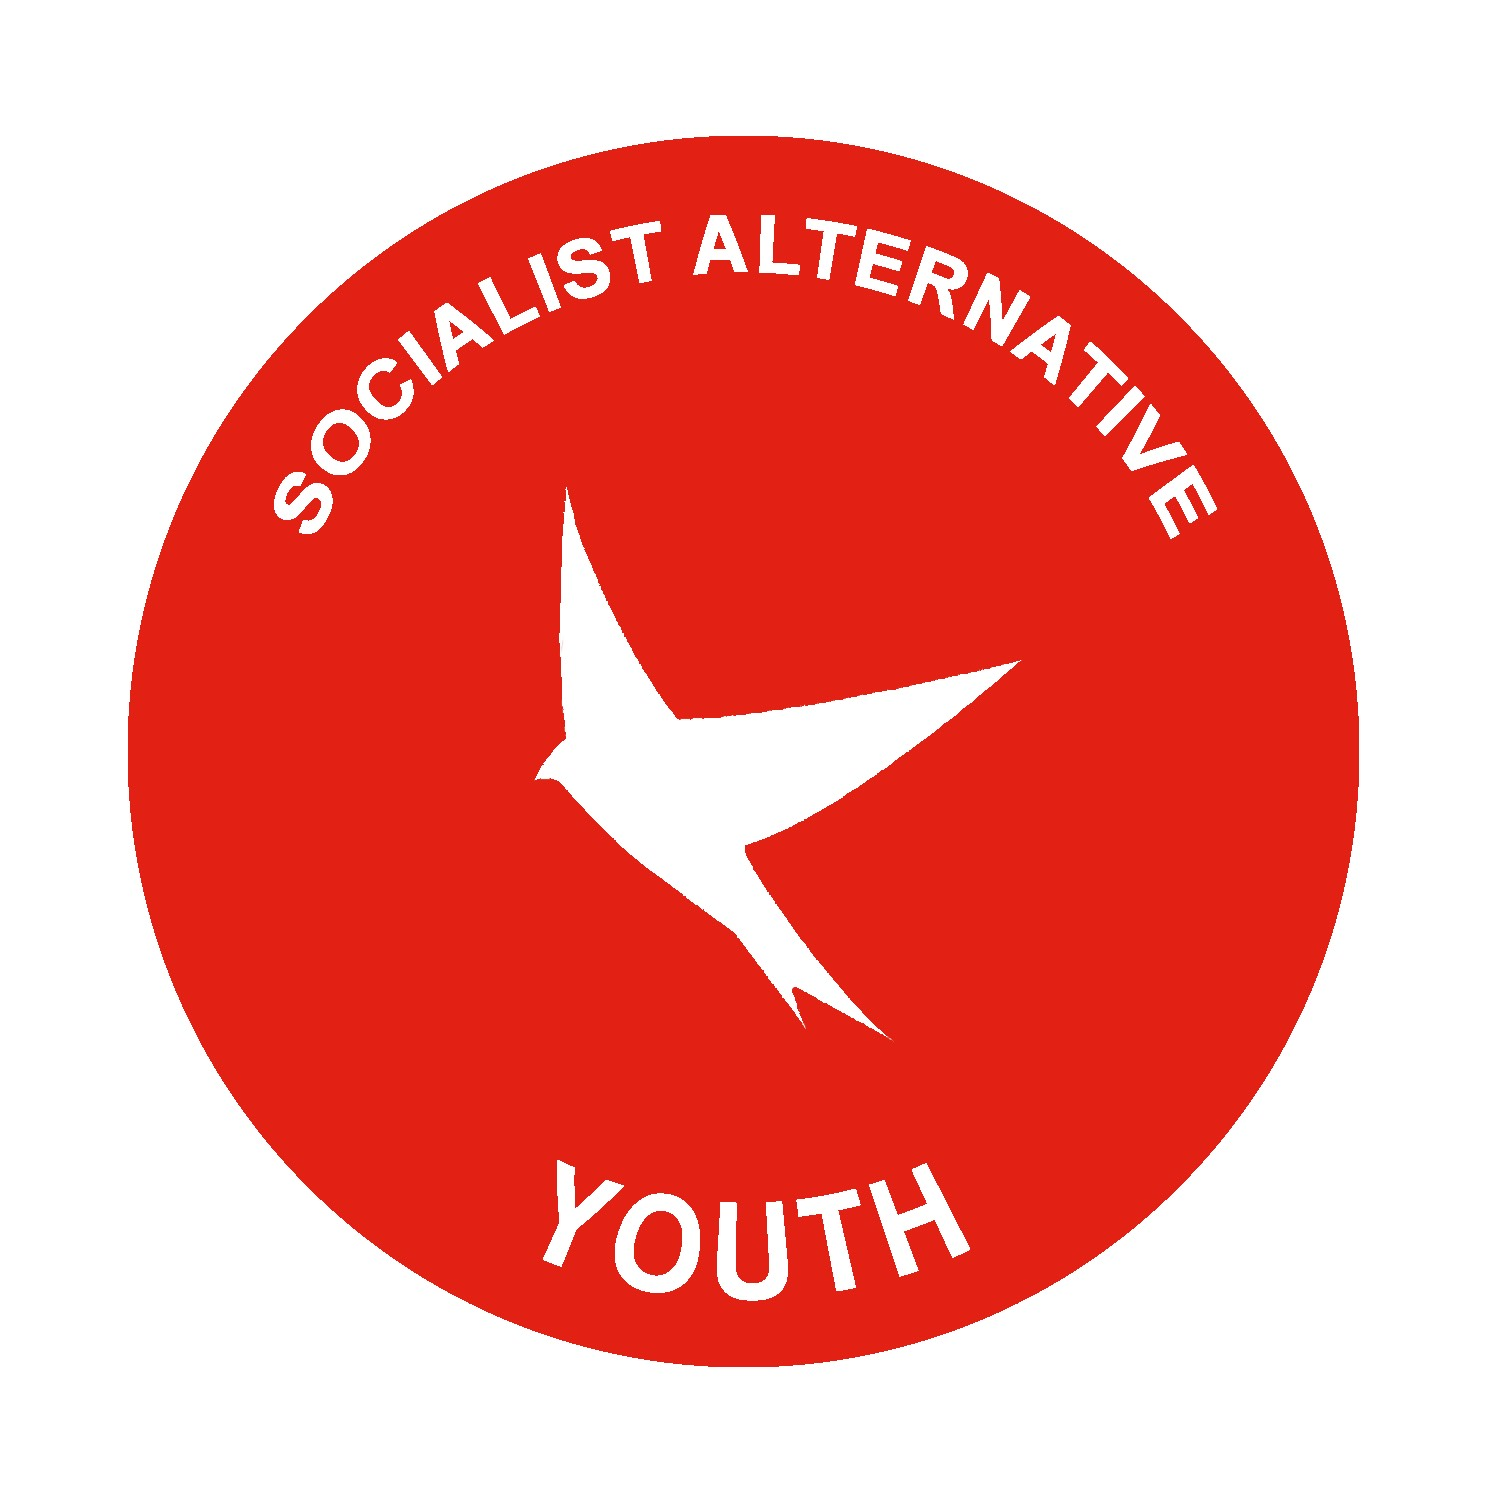 Socialist Alternative Youth